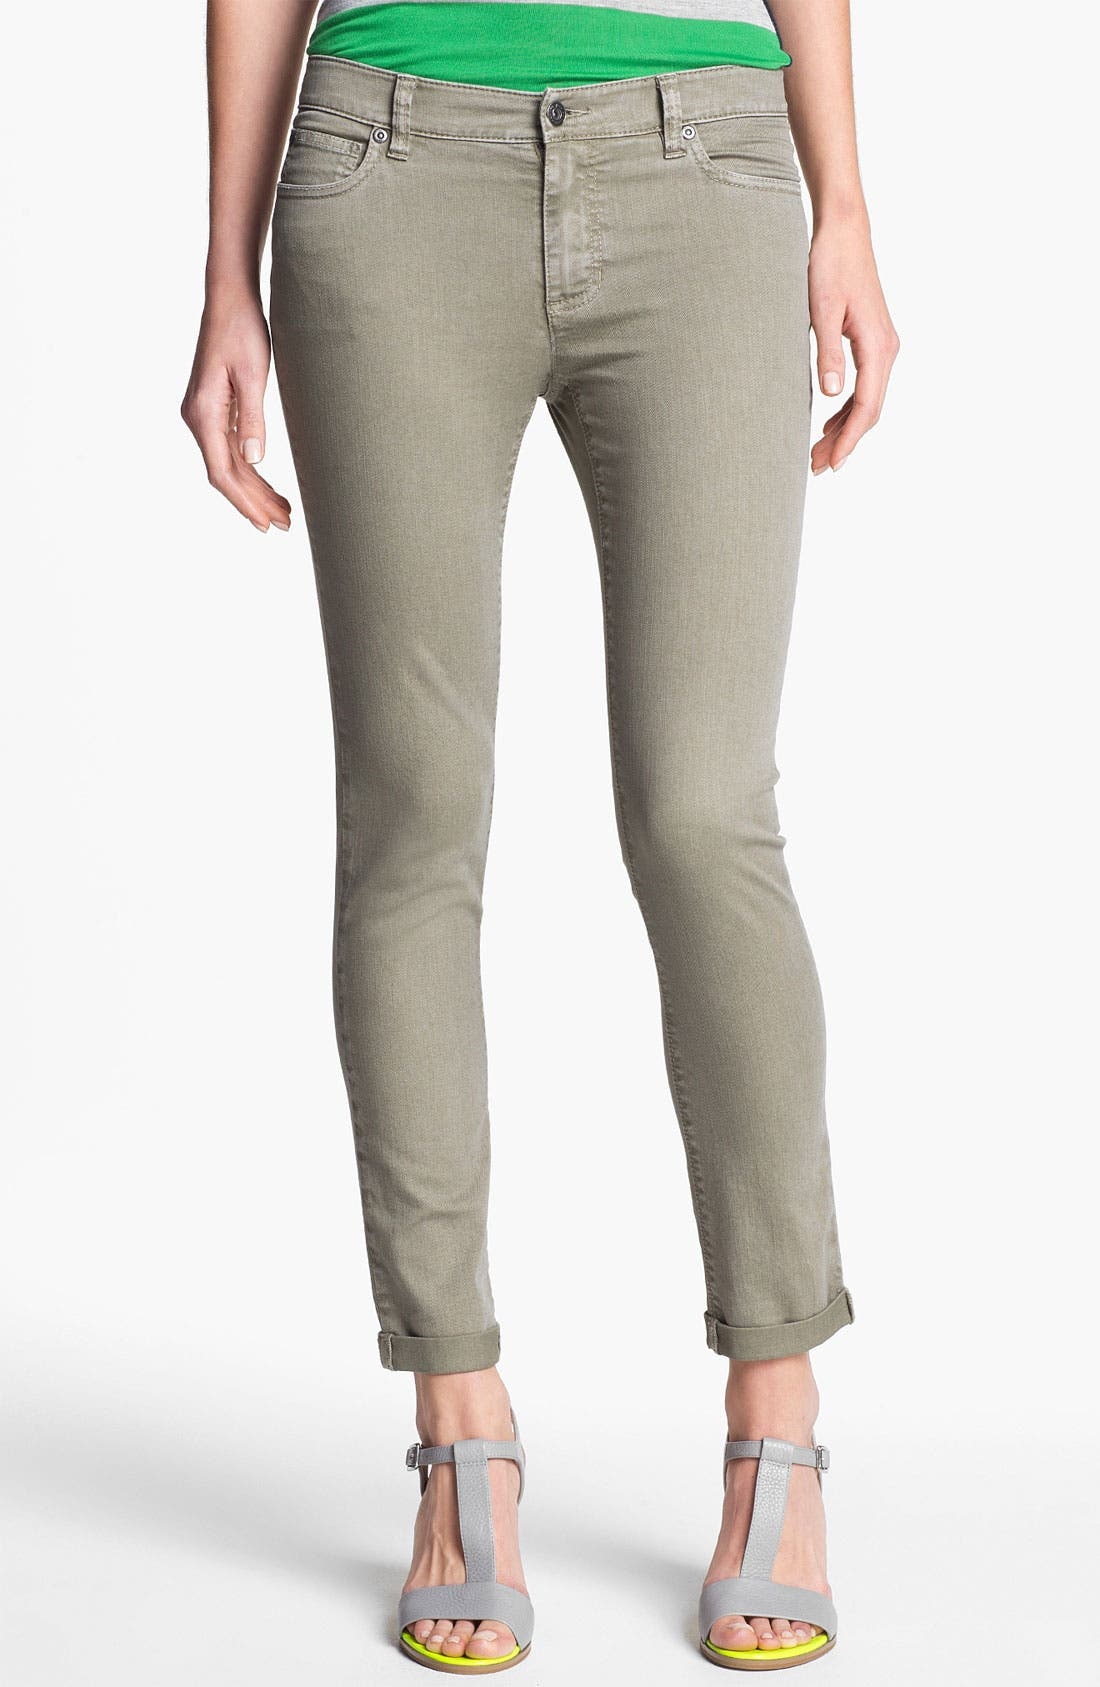 Alternate Image 1 Selected - Two by Vince Camuto 'Shorty' Skinny Crop Jeans (Washed Olive)